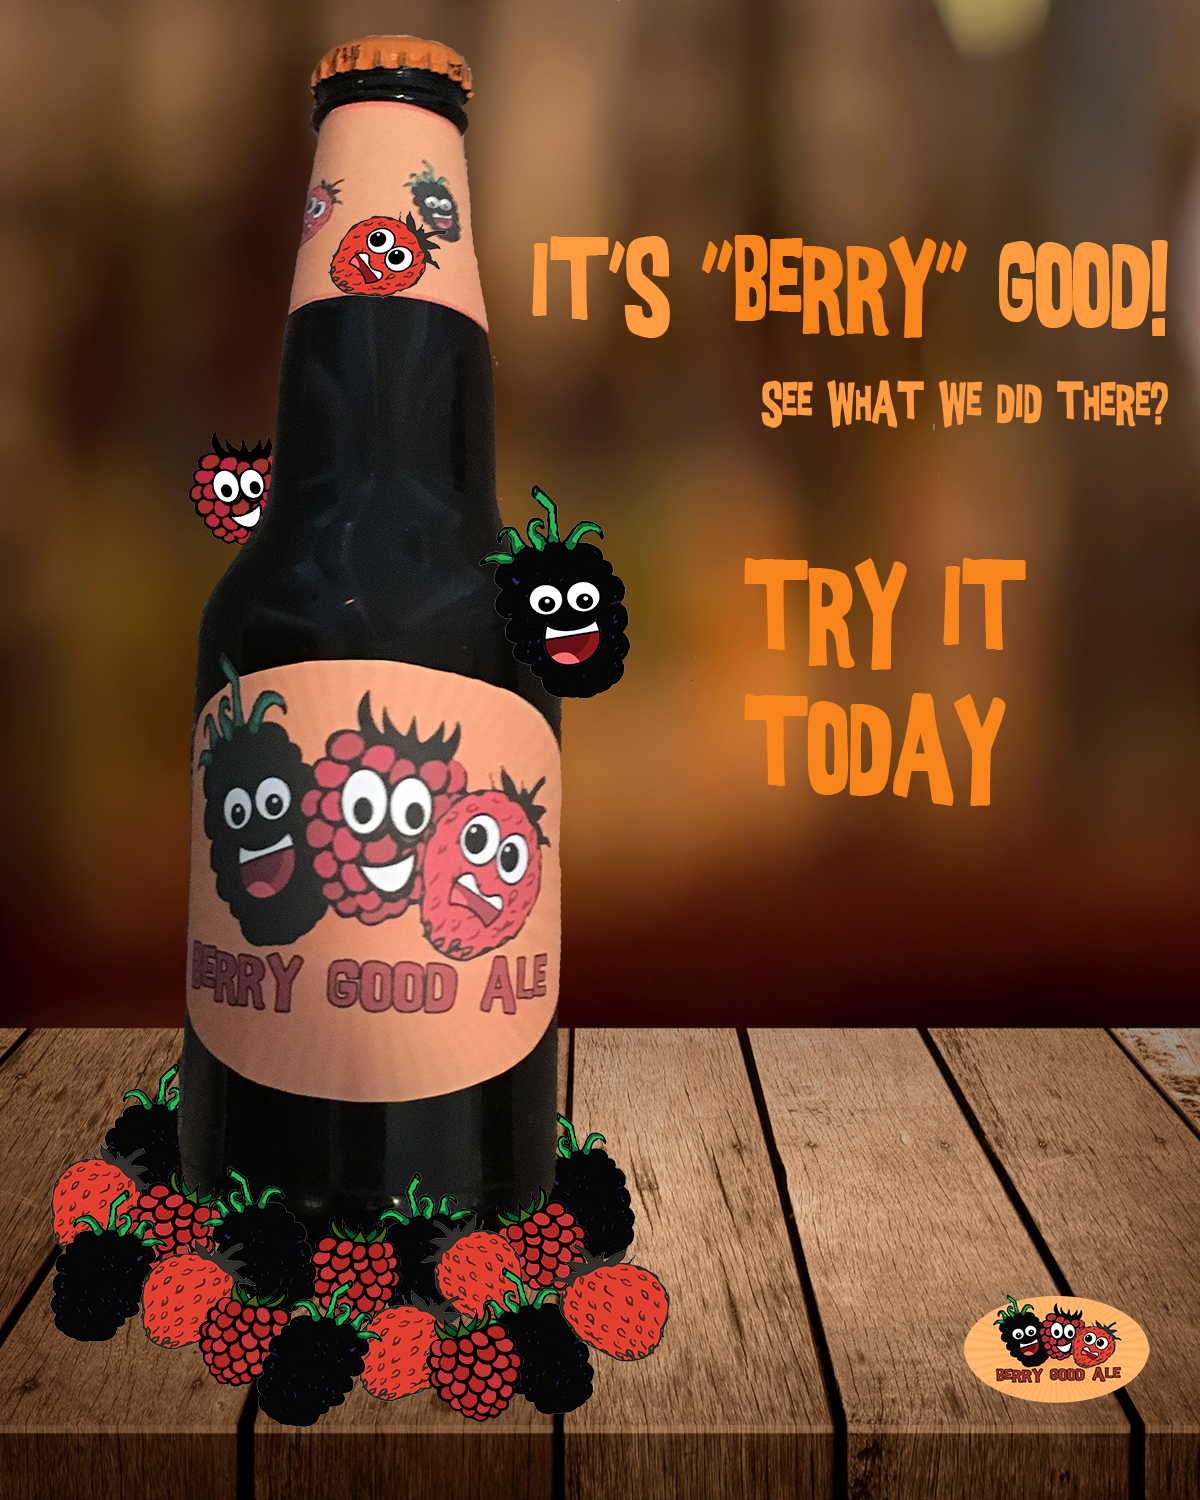 Berry Good Ale